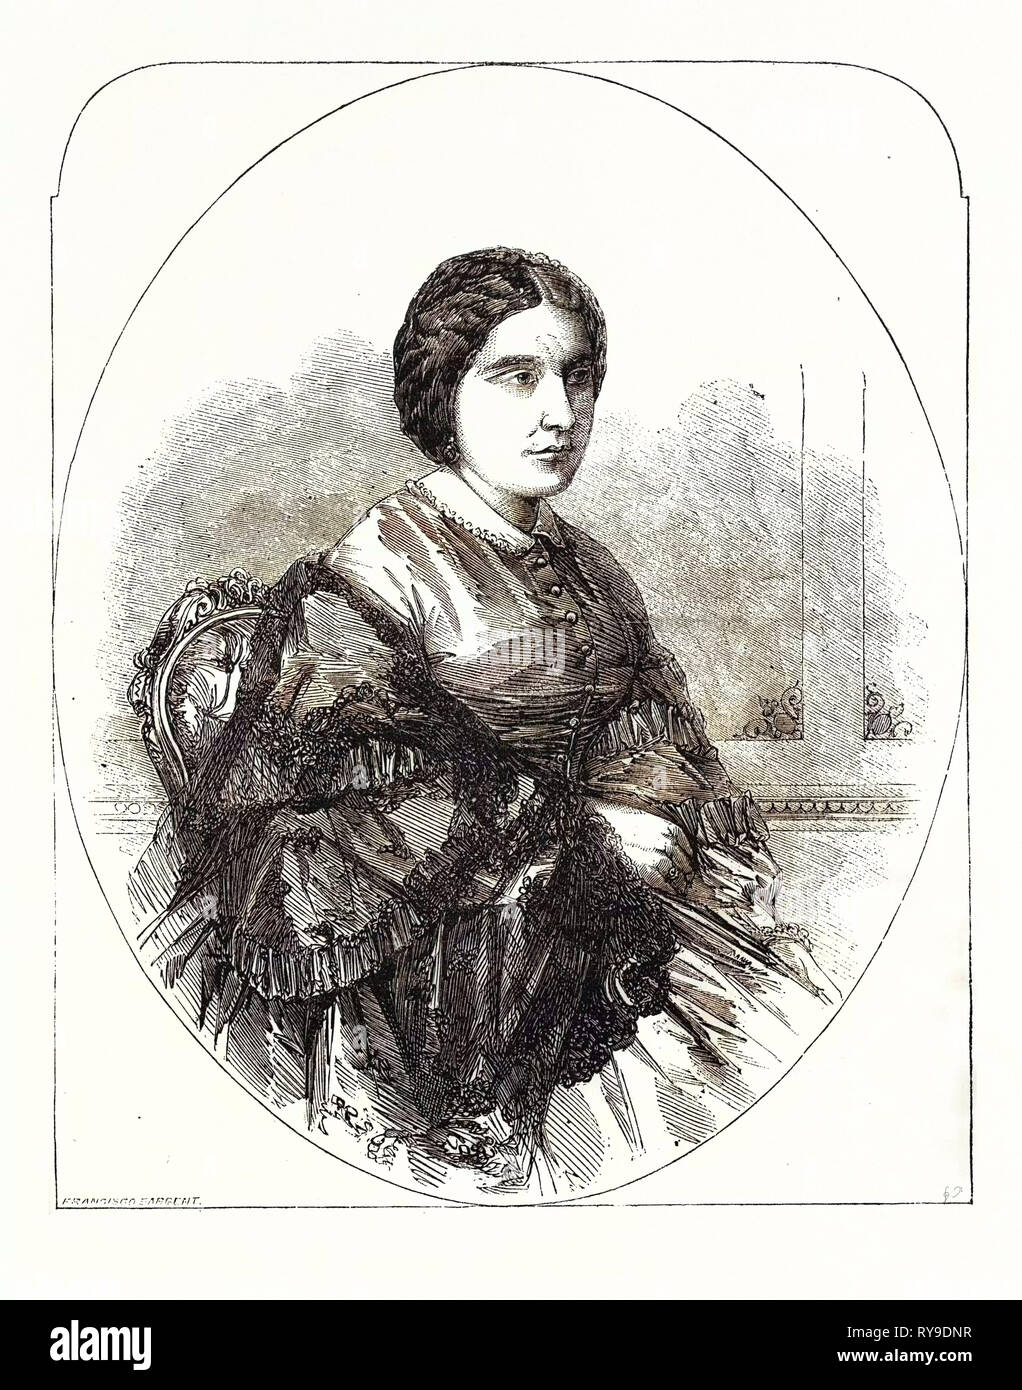 Madame Miolan-Carvalho, of the Royal Italian Opera, Covent Garden, London, UK. Marie Caroline Miolan-Carvalho, December 31, 1827, Marseille - July 10, 1895, Chateau-Puys, Was a Famed French Operatic Soprano, Particularly Associated with Light Lyric and Coloratura Roles - Stock Image